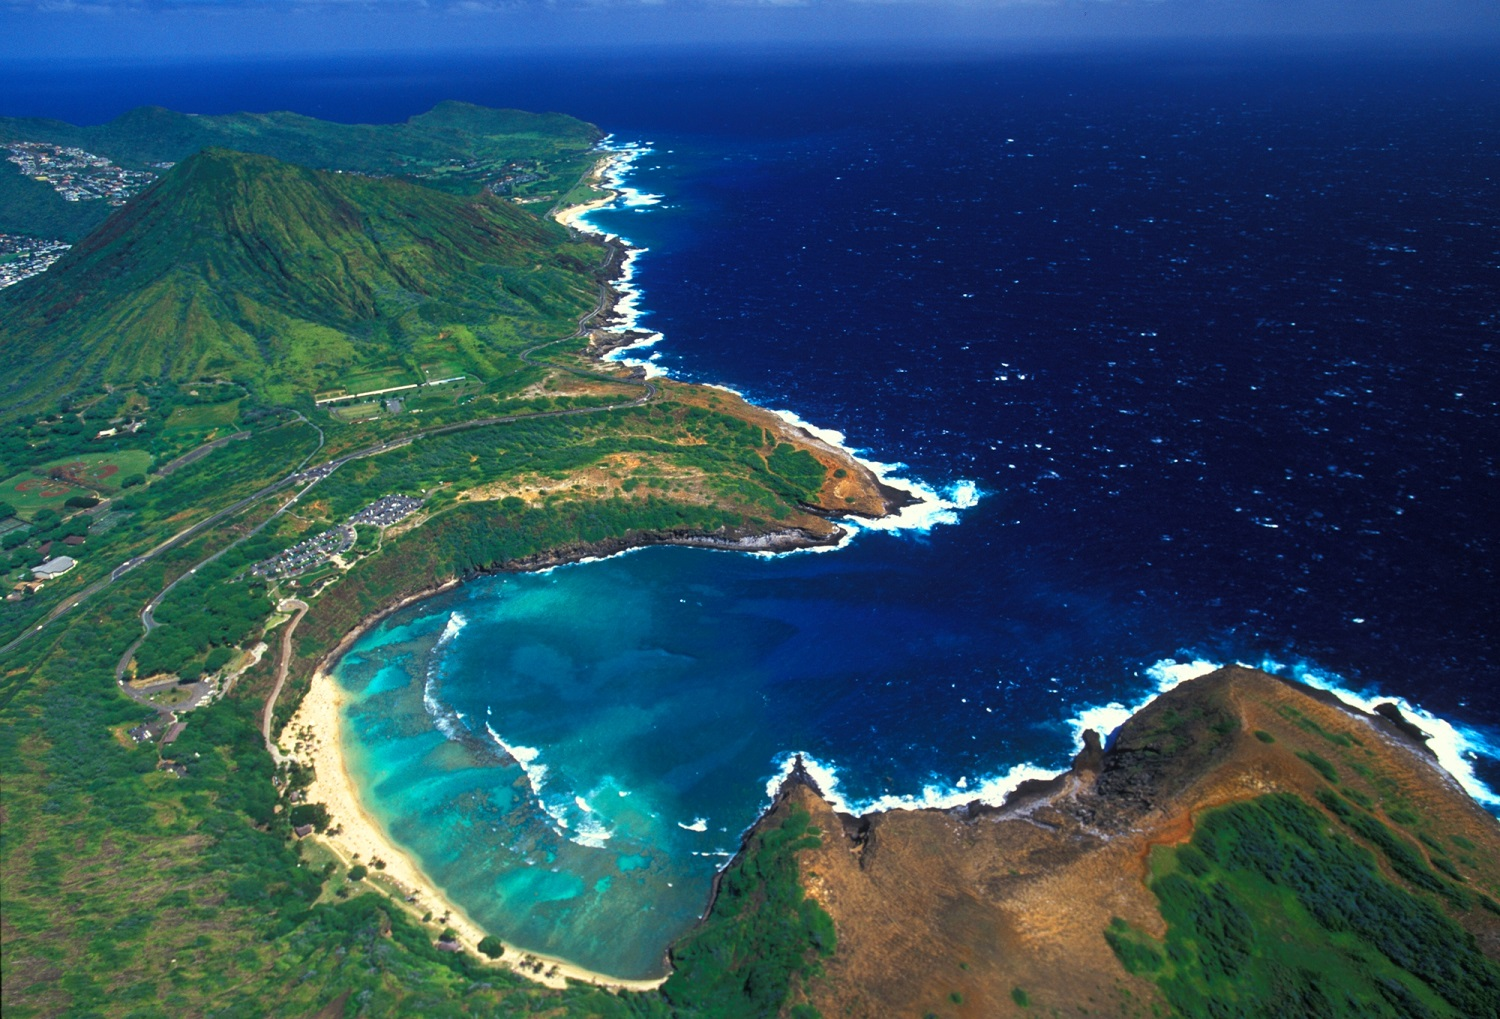 blue hawaiian helicopters kona with An Introduction To Hawaii on D671 5069WEST45 besides Helicopter Tour Big Island Lava additionally Watch together with Big Island Hawaii Map likewise Helicopter Tour Kona.